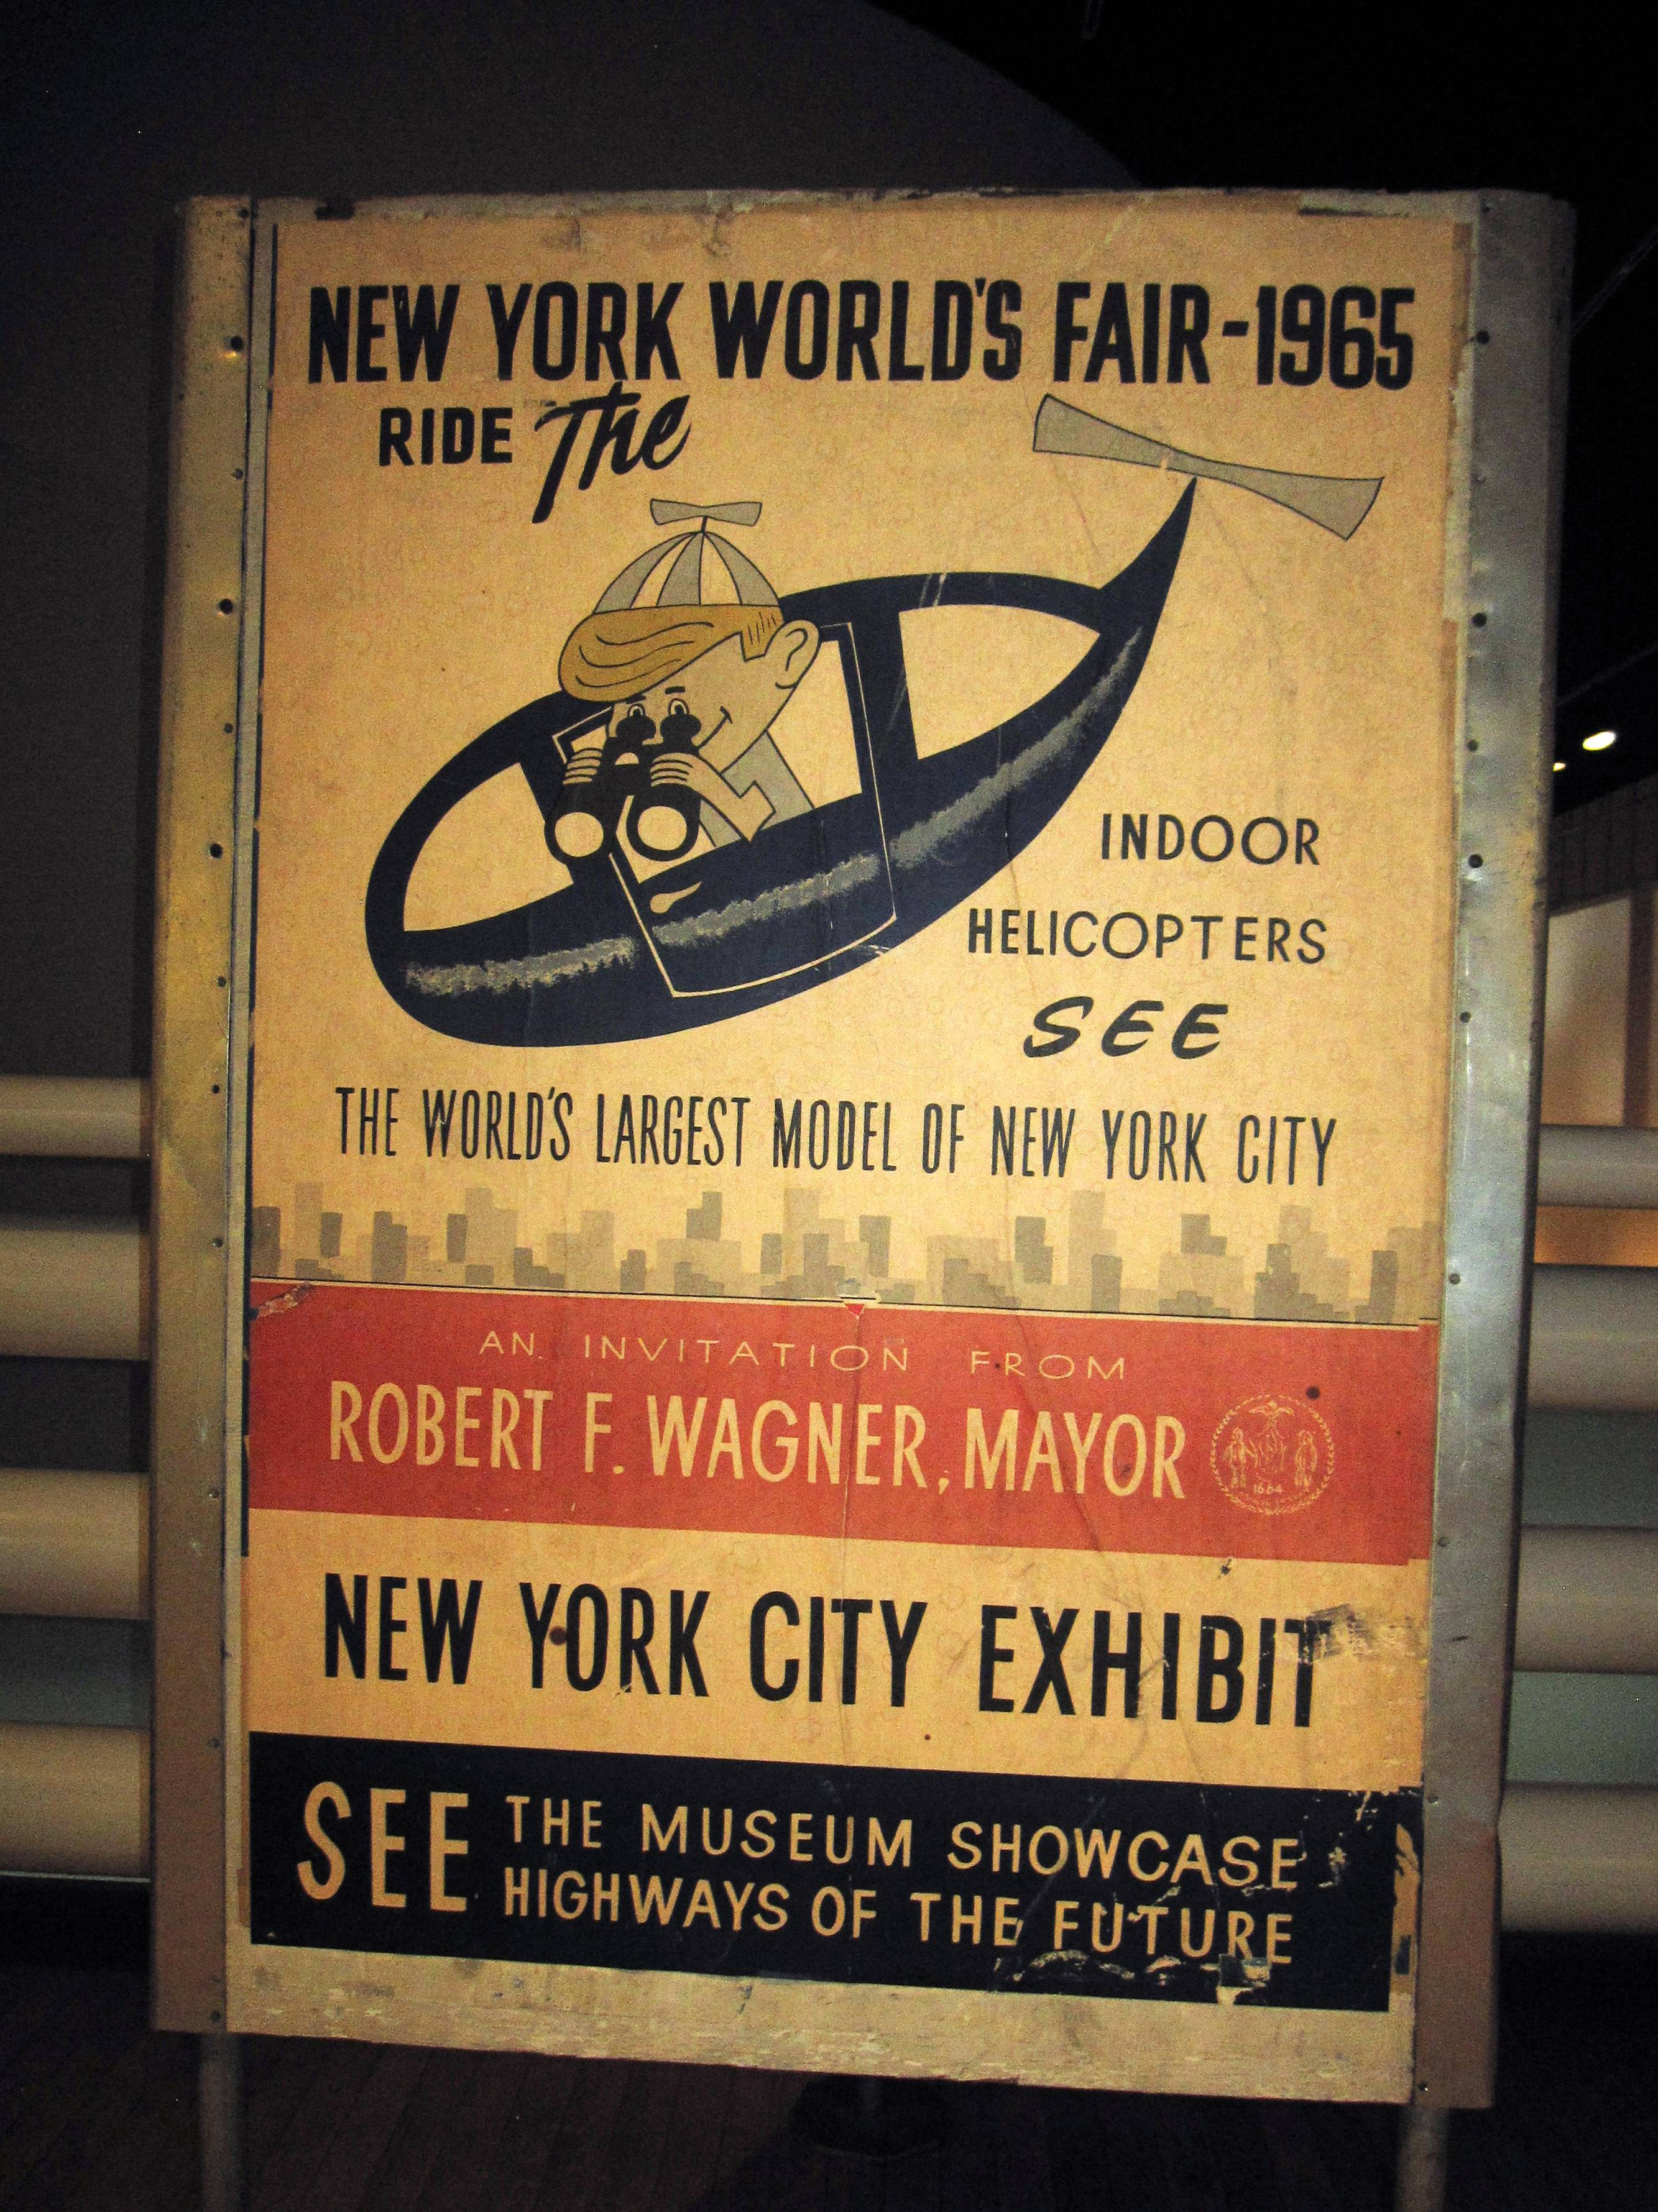 This poster from the 1964 World's Fair is on display at the Queens Museum of Art in Flushing Meadows Park along with other artifacts from the fair.